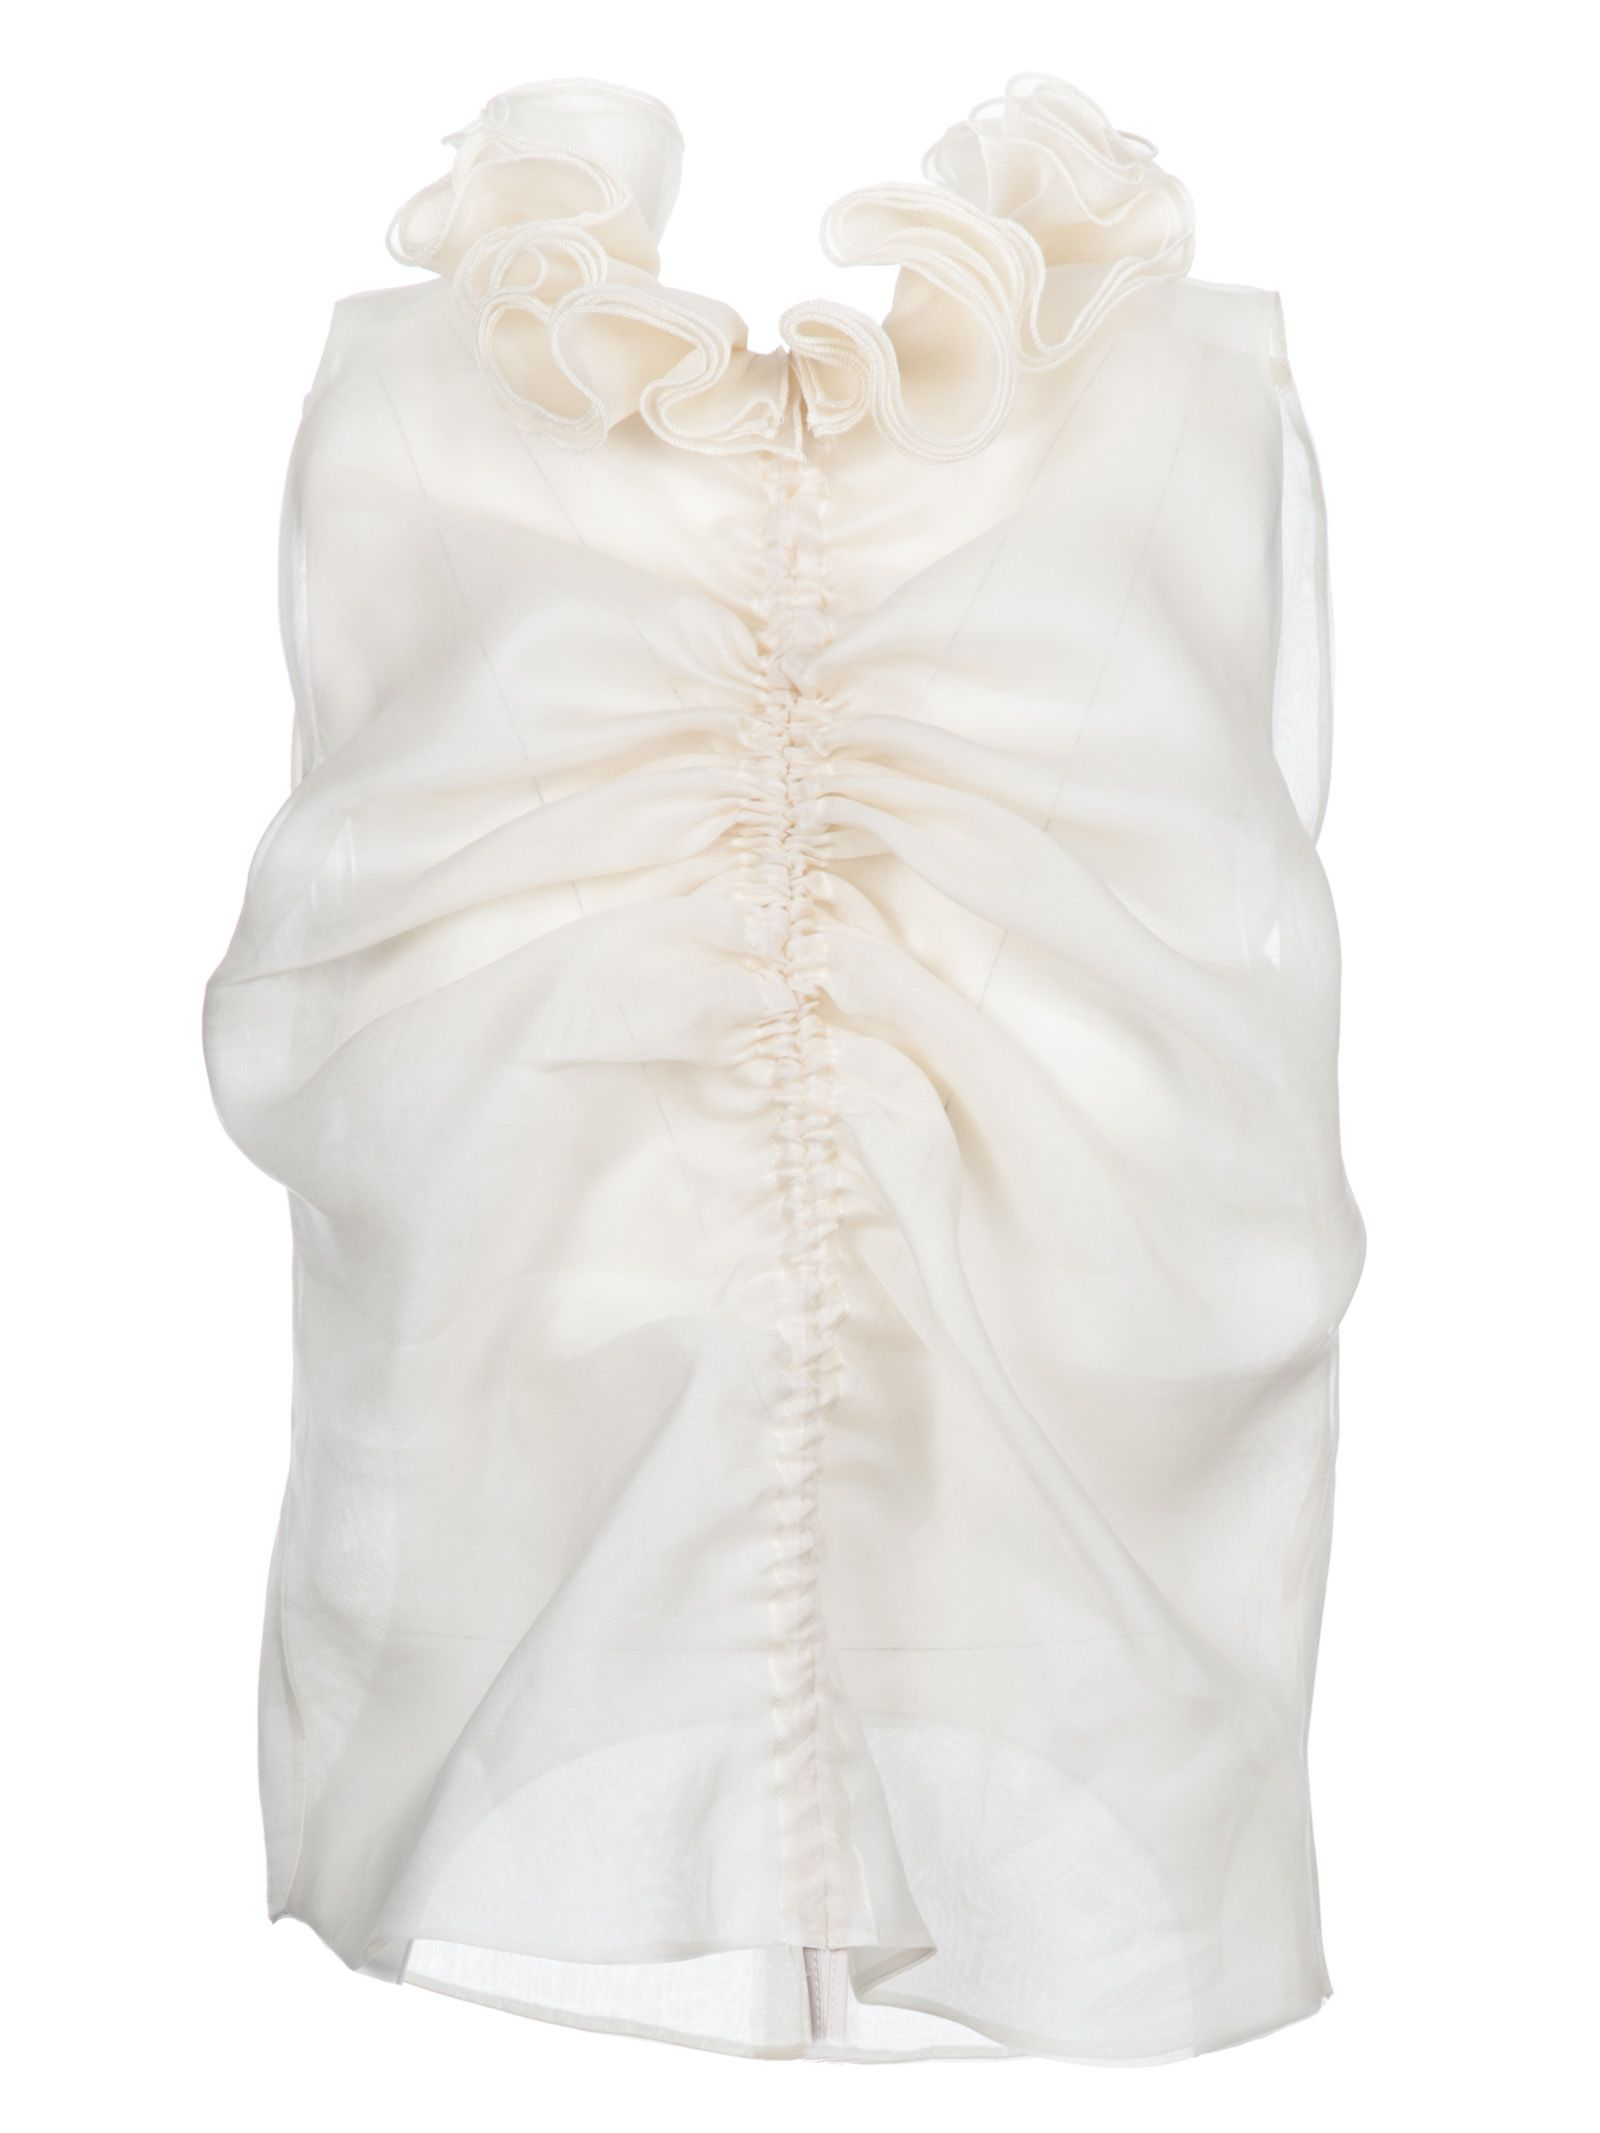 Giuseppe Di Morabito Ruffled Sheer Top